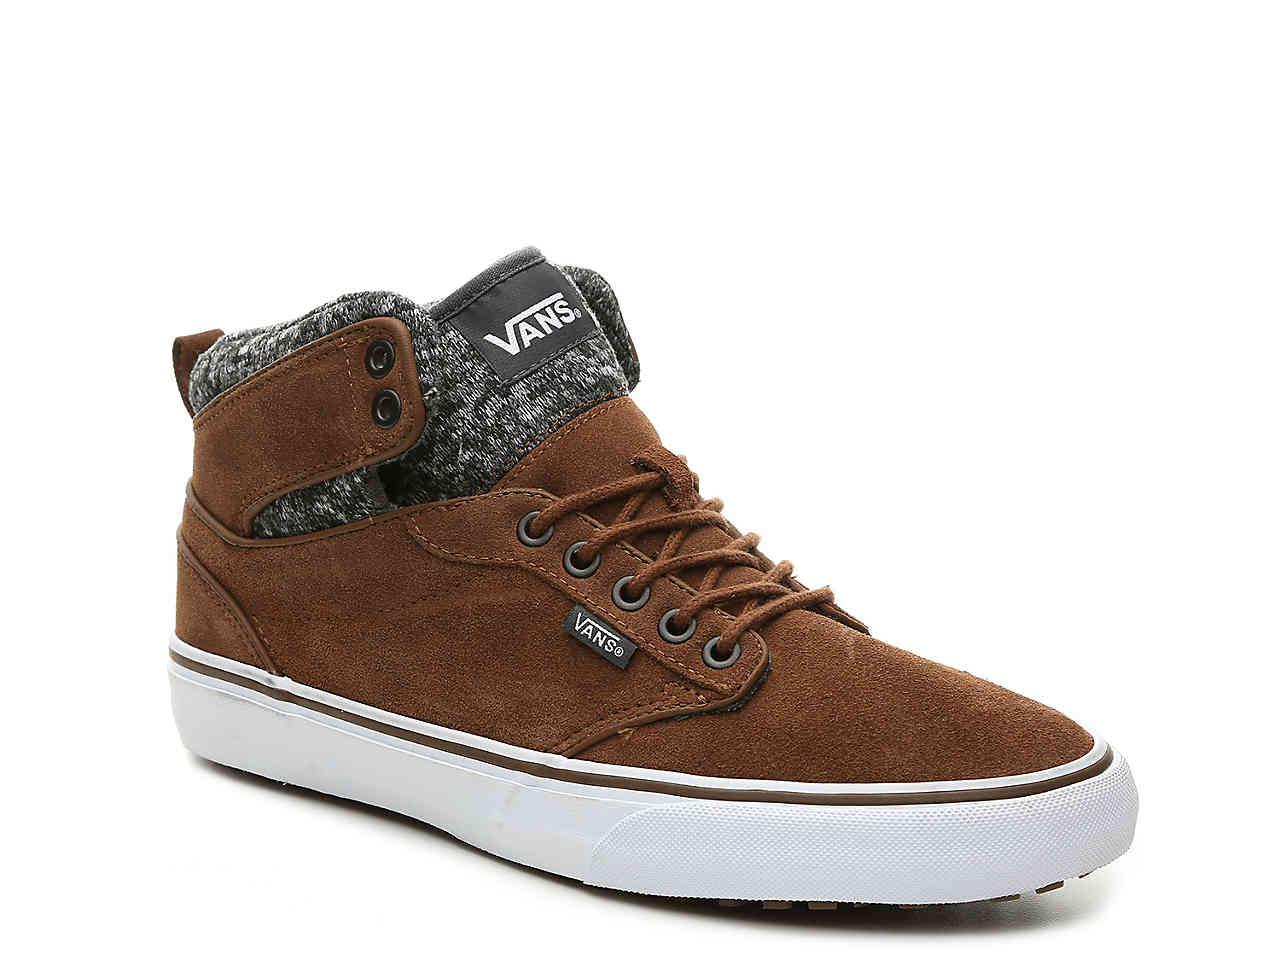 1edf4f2be8c Lyst - Vans Atwood Hi Mte High-top Sneaker in Brown for Men